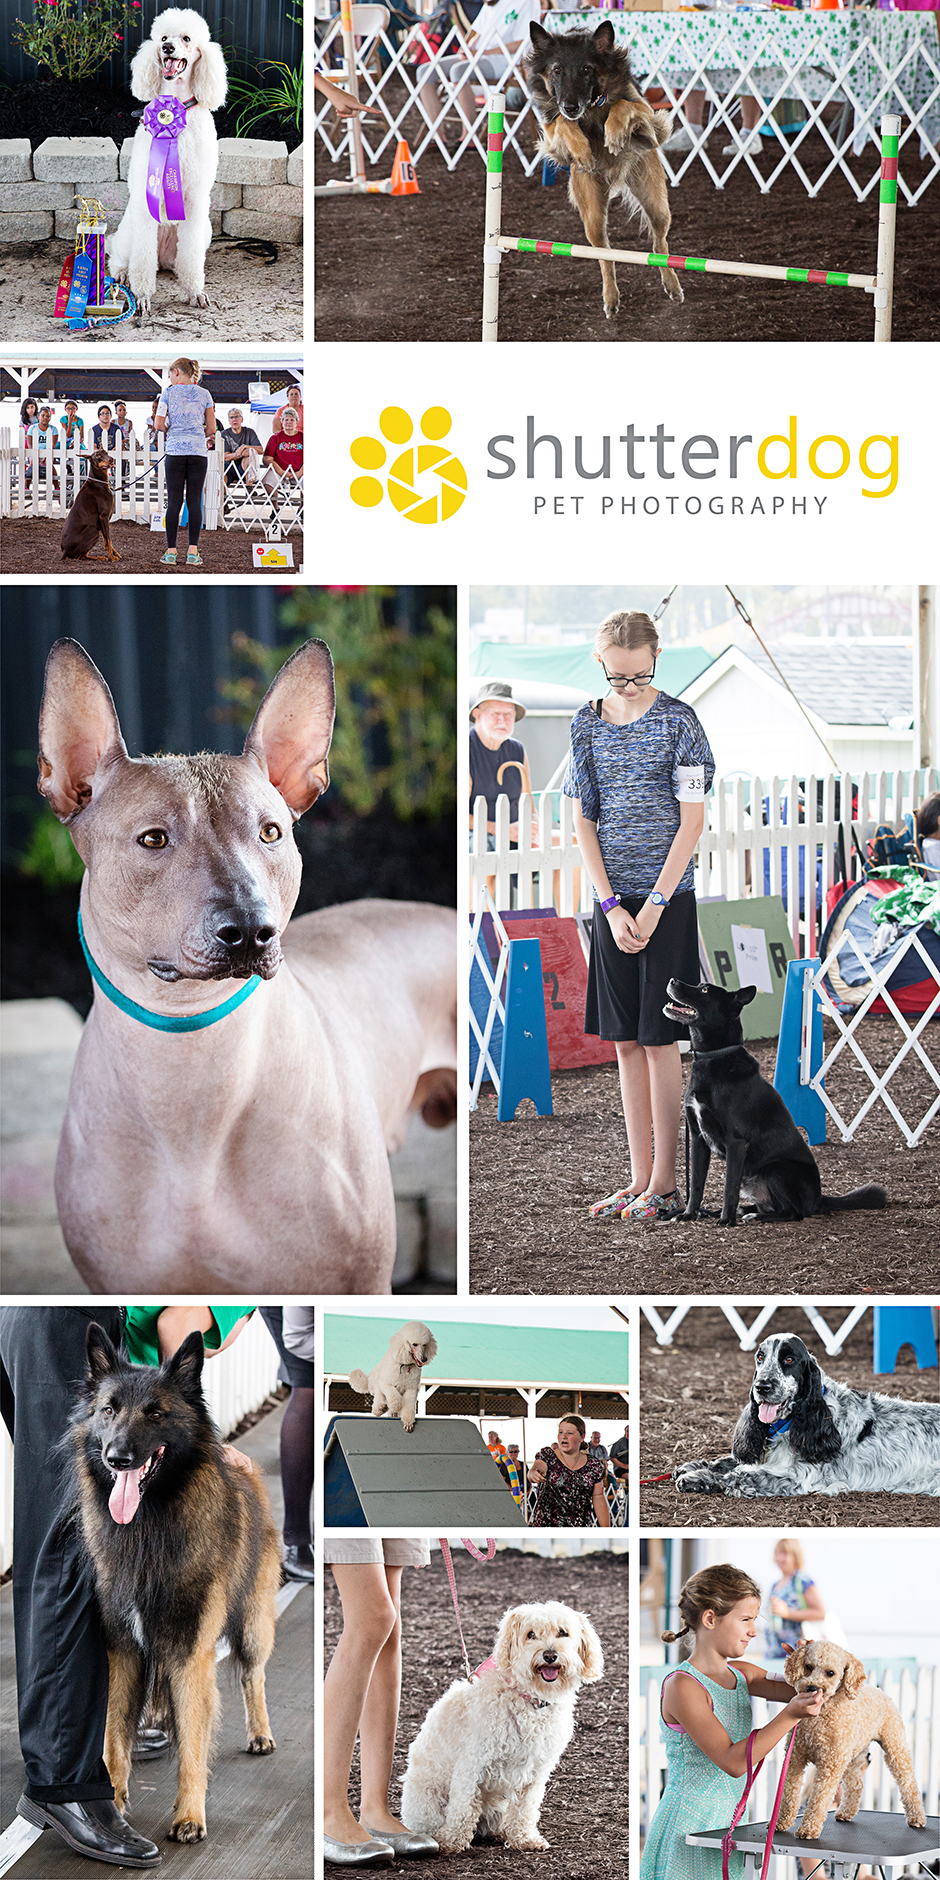 favorite images from the 2017 4-H dog show at the Great Frederick Fair